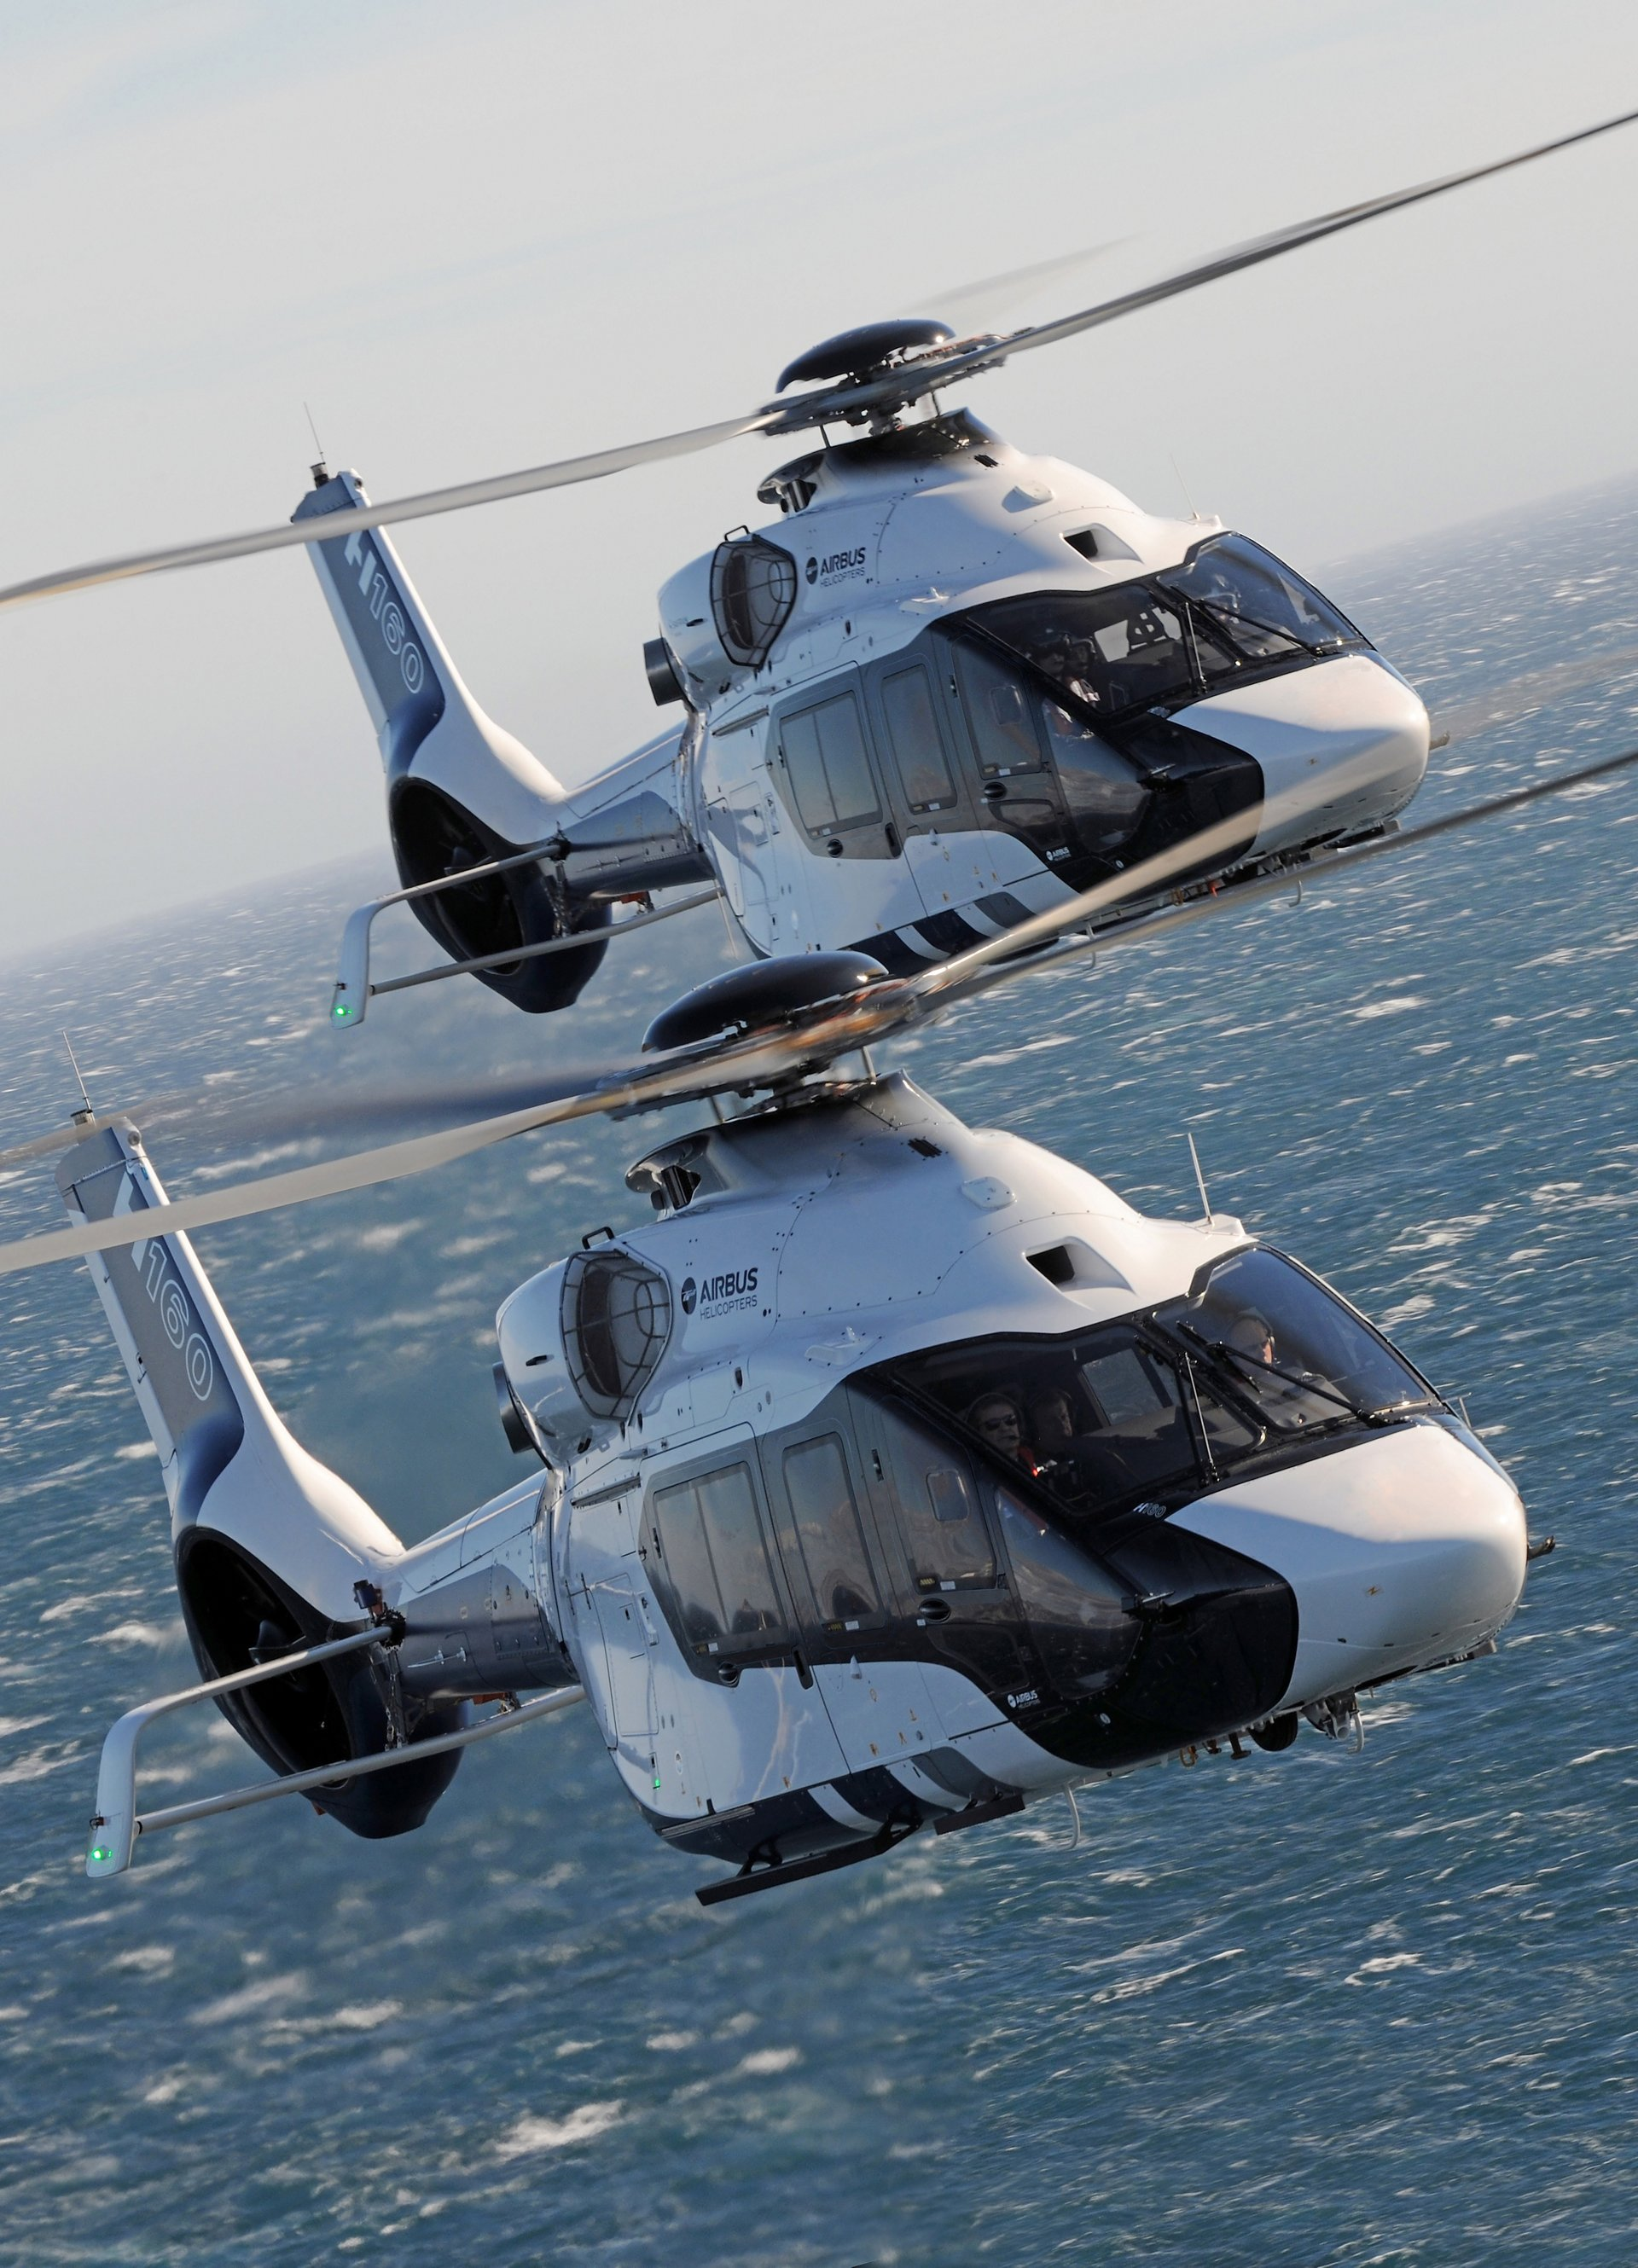 H160 ready to take on the market at Heli-Expo